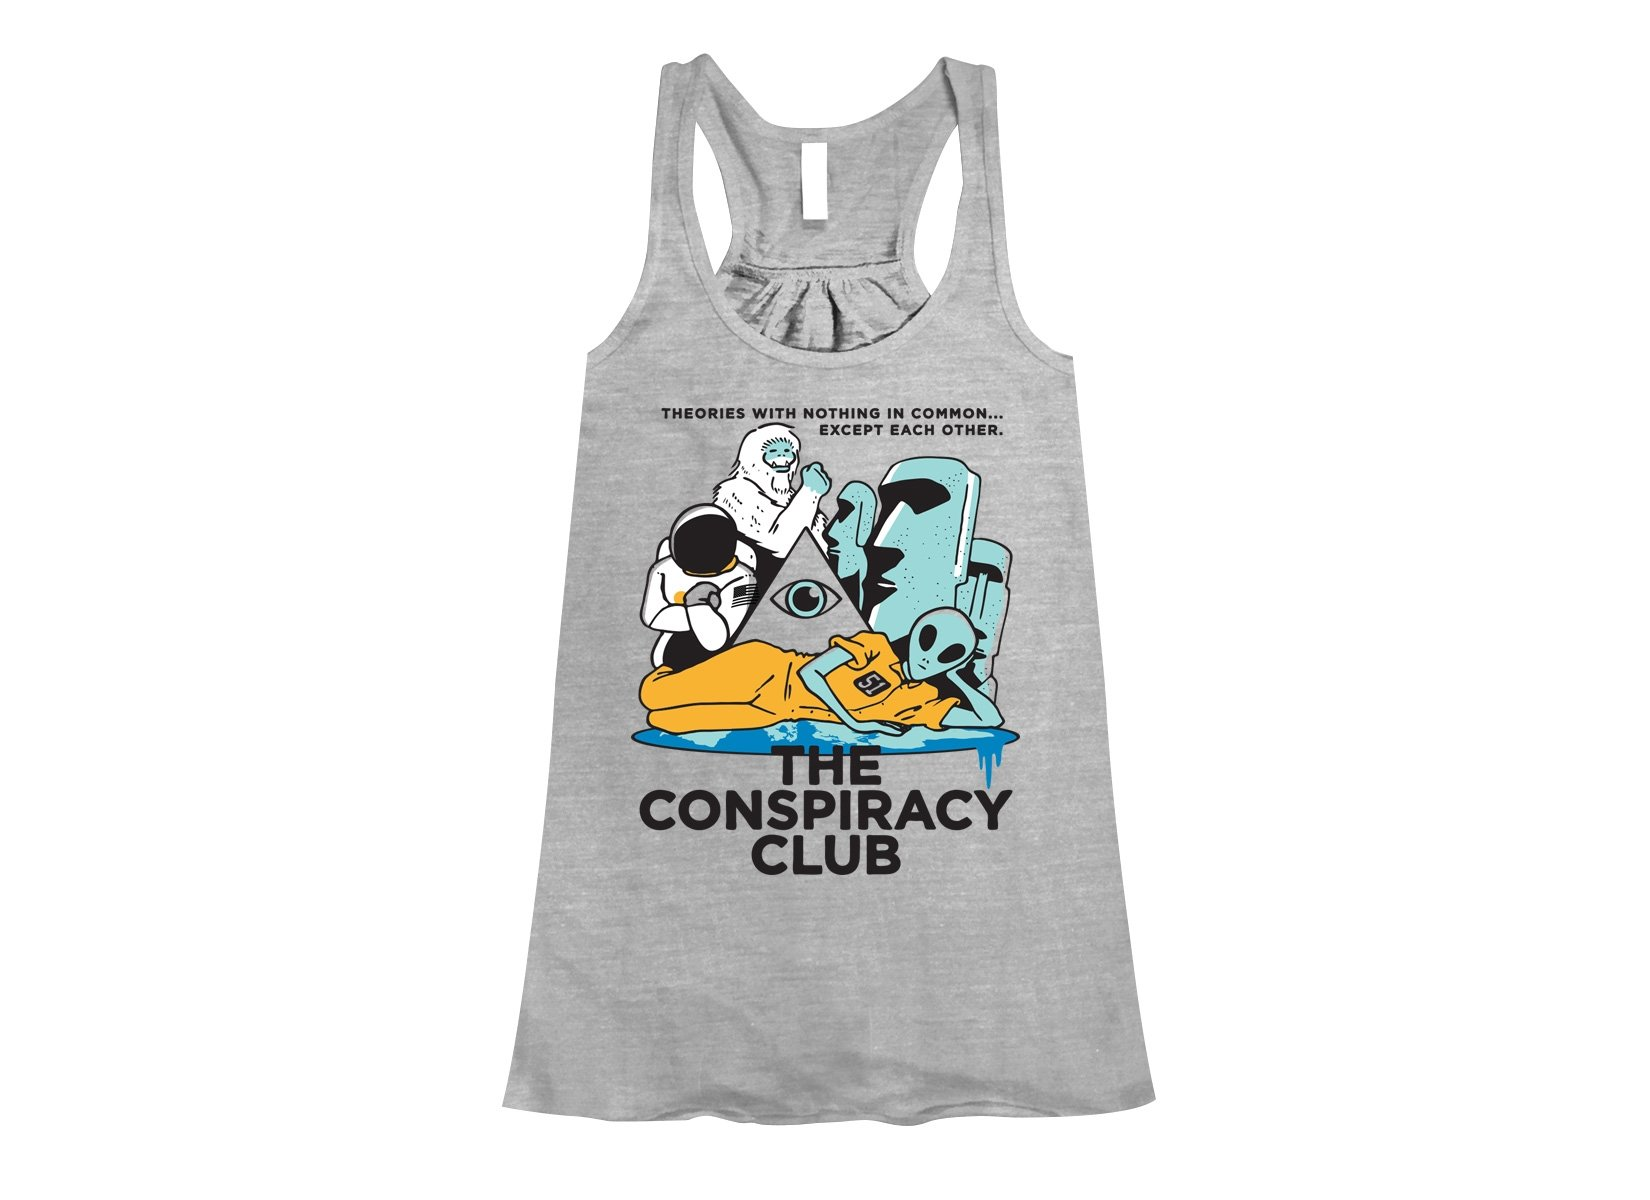 The Conspiracy Club on Womens Tanks T-Shirt